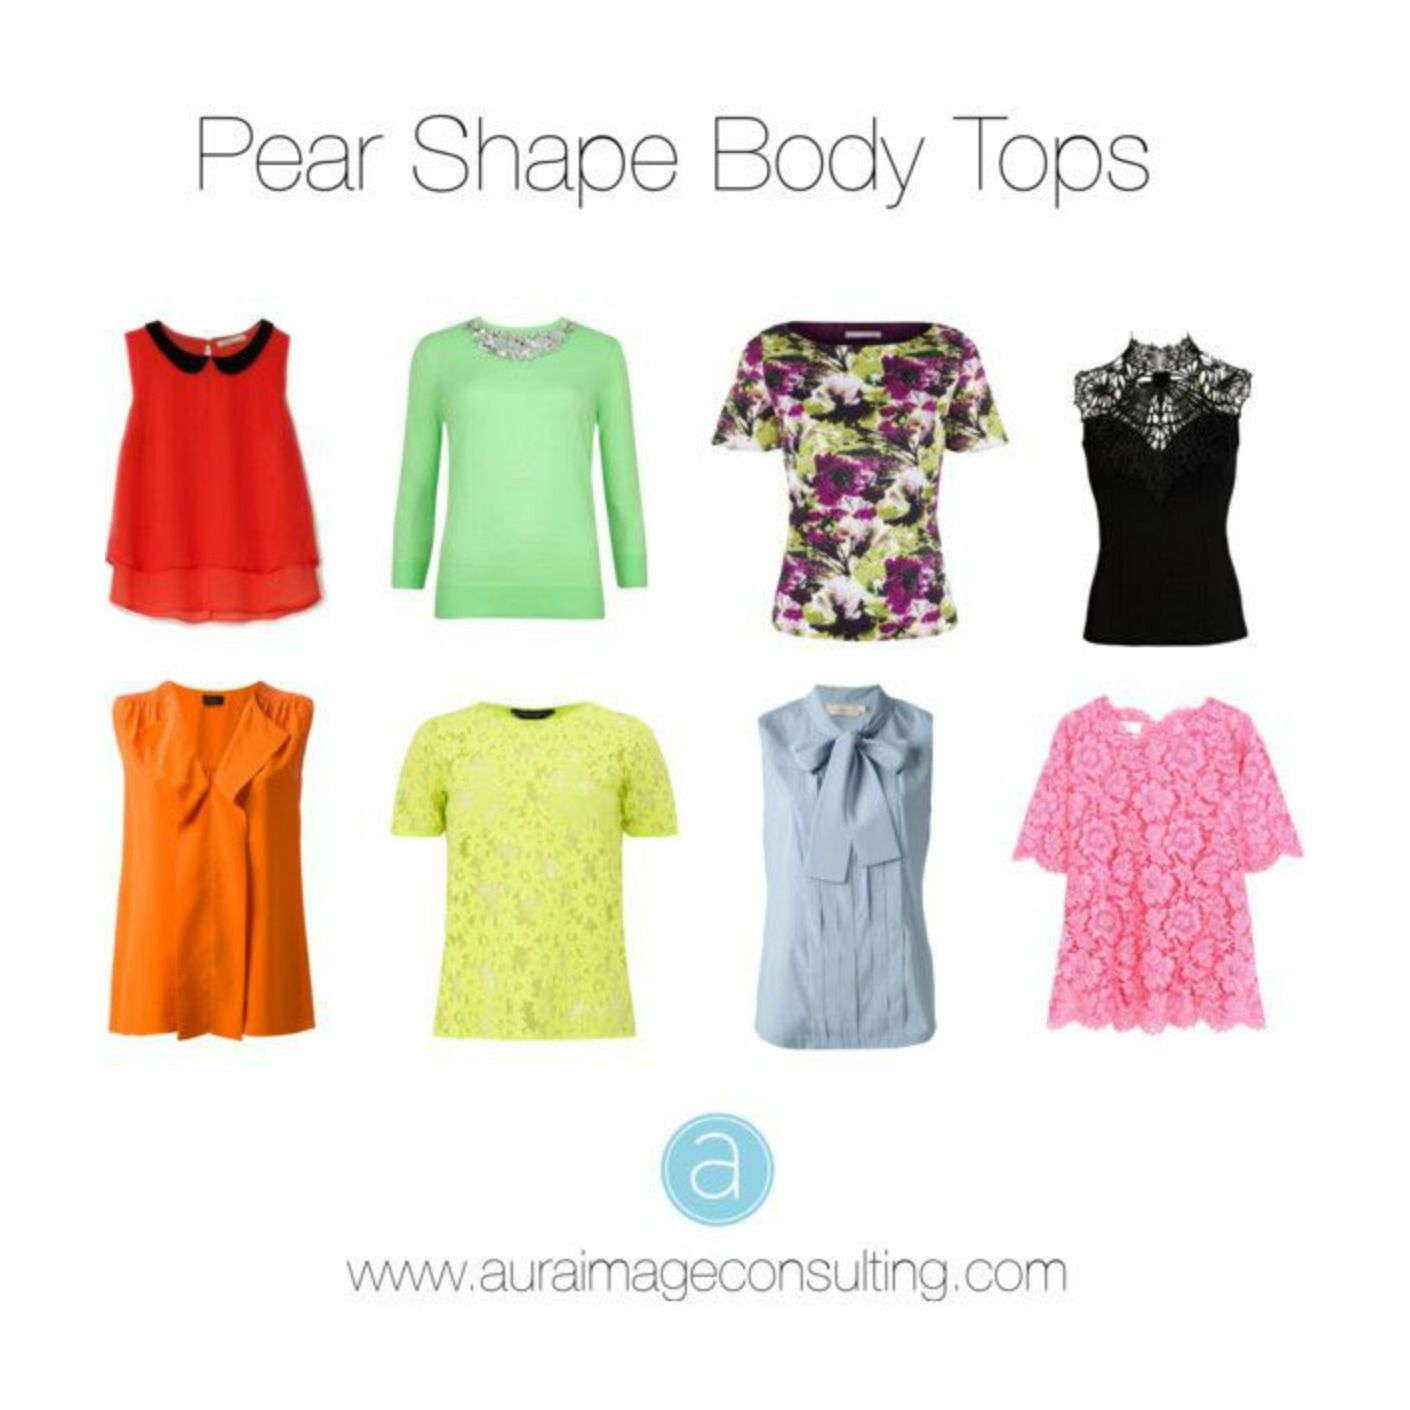 Fashions for pear shaped women 79